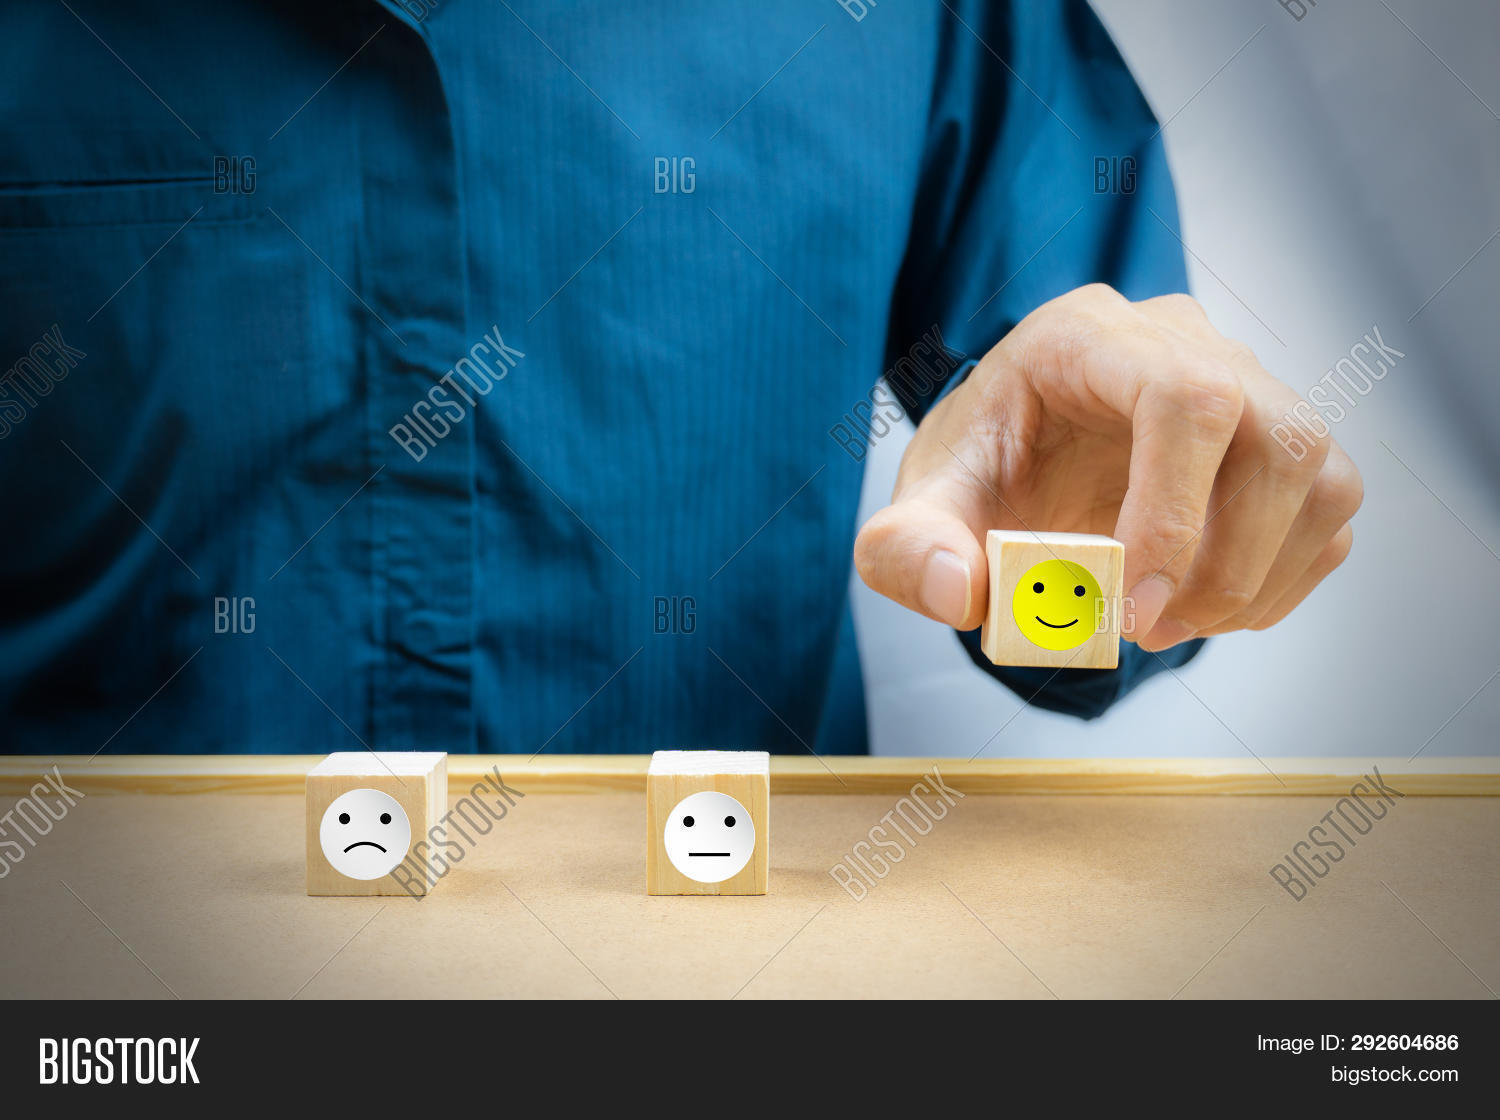 background,best,block,blue,business,businessman,button,centric,client,communication,concept,corporate,customer,evaluation,excellent,experience,face,feedback,finger,good,hand,happy,icon,investment,loyalty,male,man,marketing,modern,positive,product,professional,quality,ranking,rating,reputation,review,satisfaction,service,sign,smile,space,success,survey,symbol,touch,user,woman,wooden